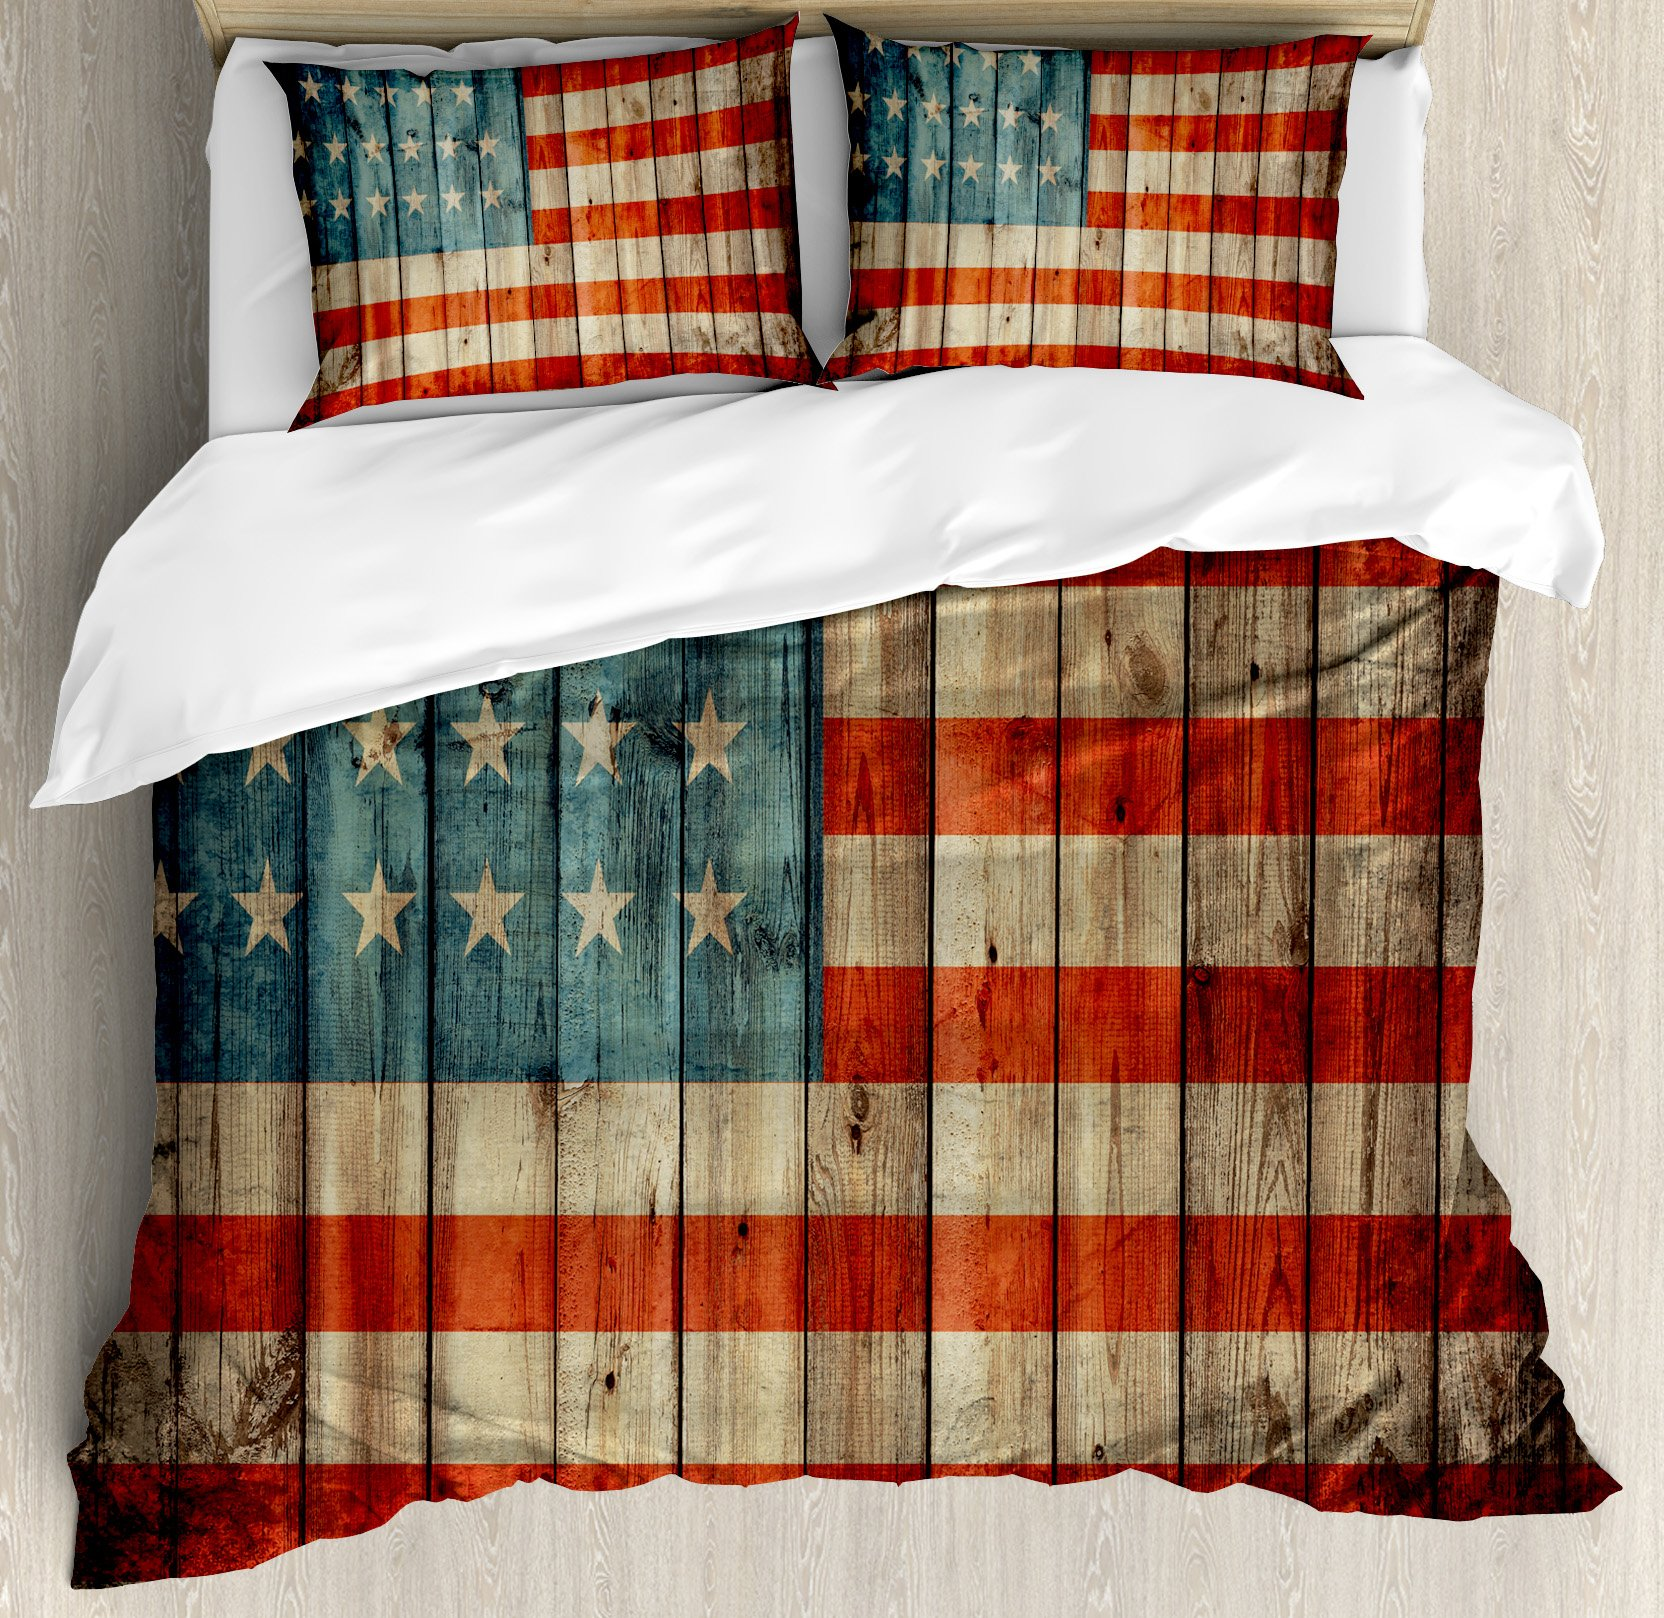 Rustic American USA Flag Duvet Cover Set King Size by Ambesonne, Fourth of July Independence Day Painted Old Wooden Looking Background Patriotism, Decorative 3 Piece Bedding Set with 2 Pillow Shams